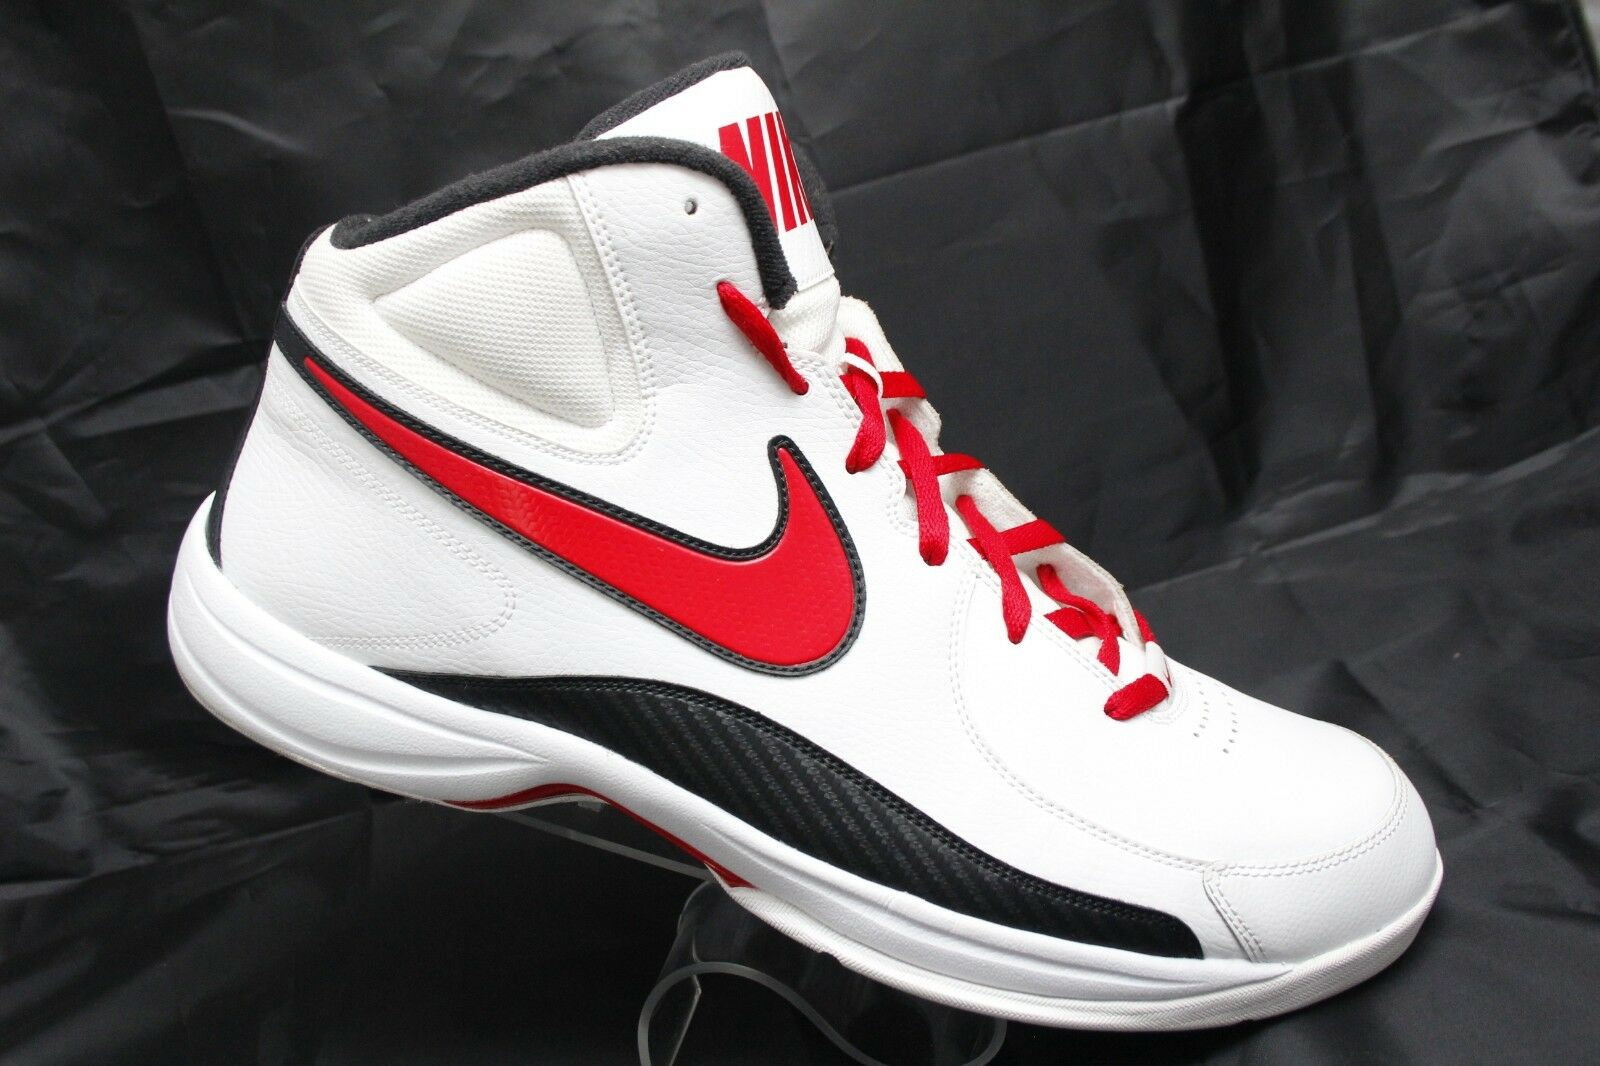 Nike The Overplay VII Mens Sz 17 White Red Black Basketball Sneakers 511372-103